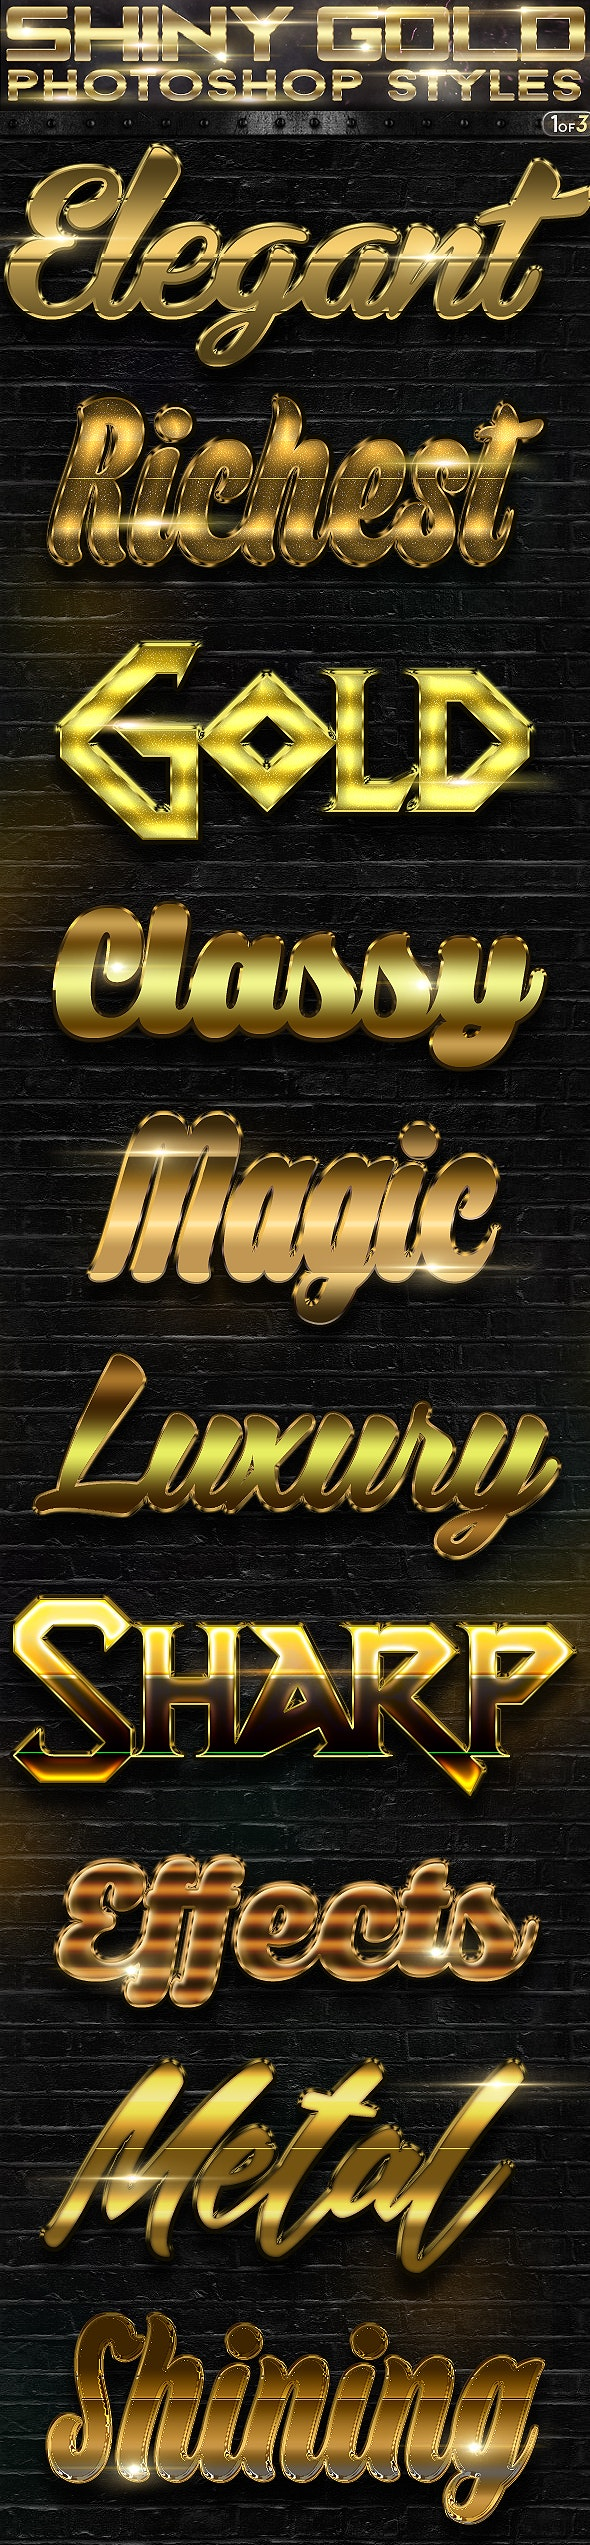 Shiny Gold Photoshop Styles 1of3 - Text Effects Actions